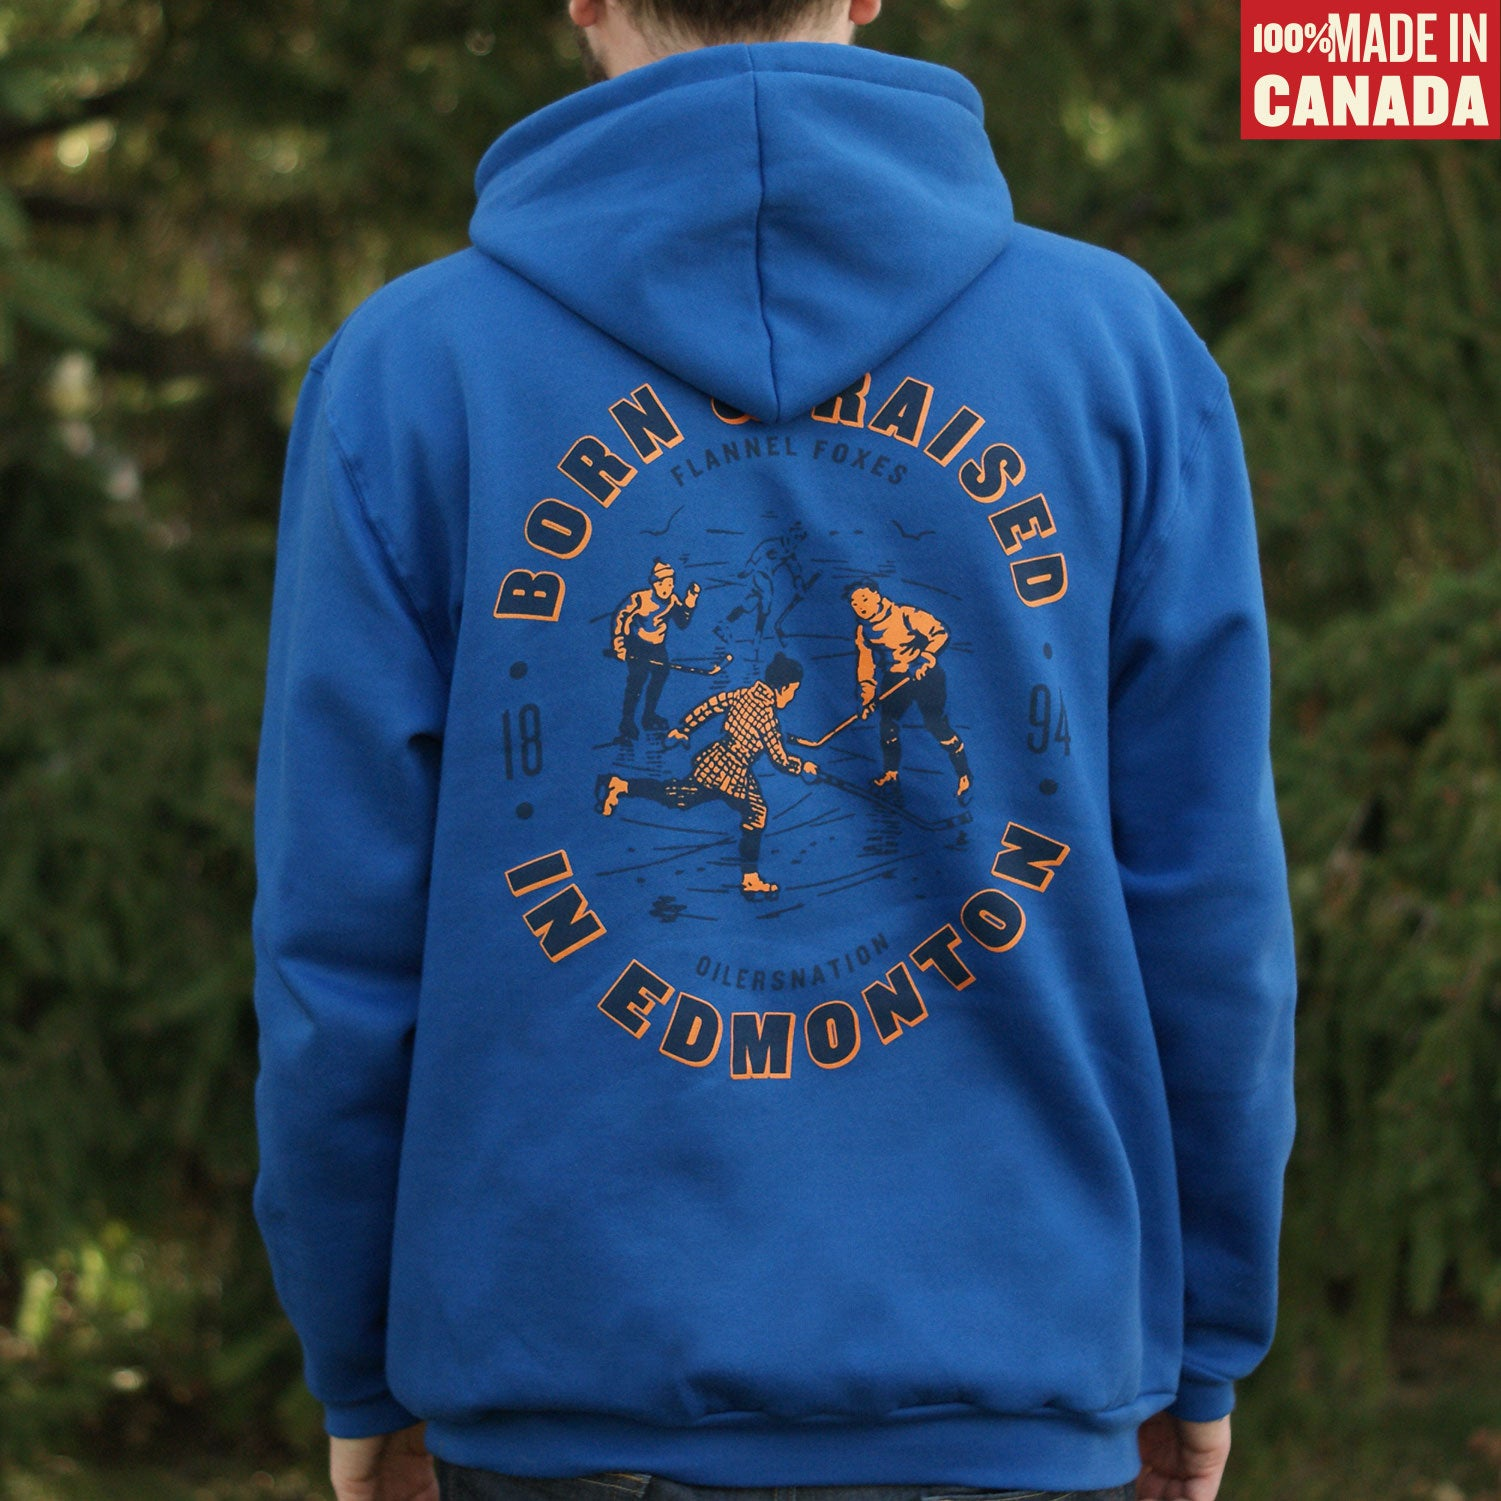 Flannel Foxes x OilersNation - Born & Raised Hoodie